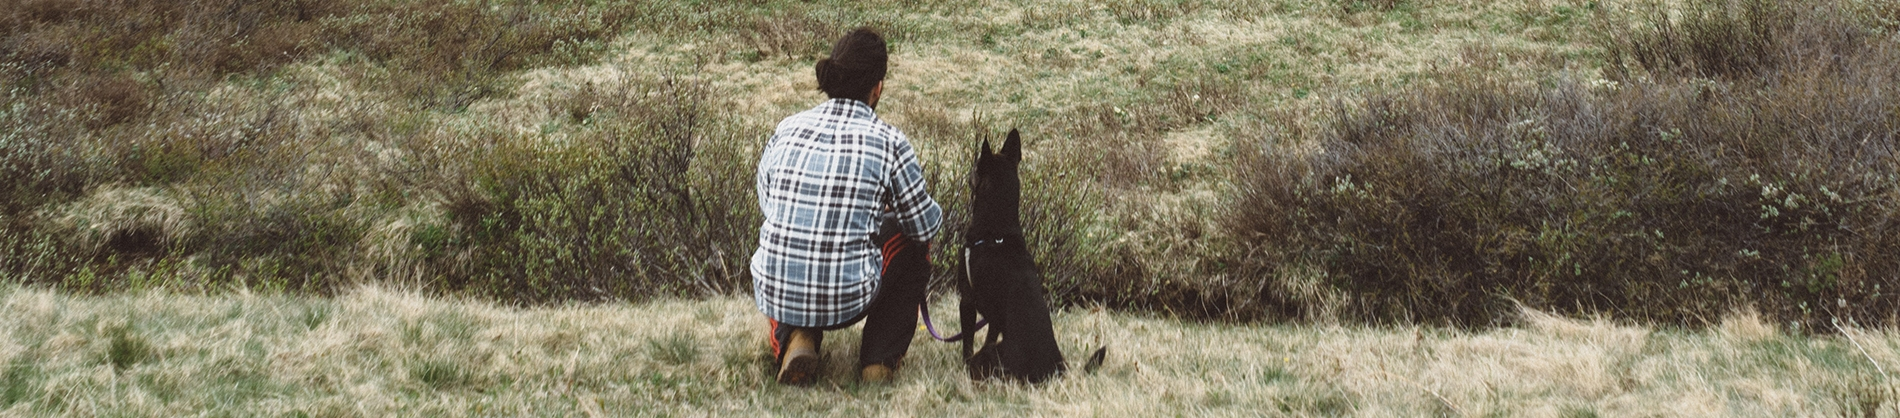 A man and his dog kneeling in a field